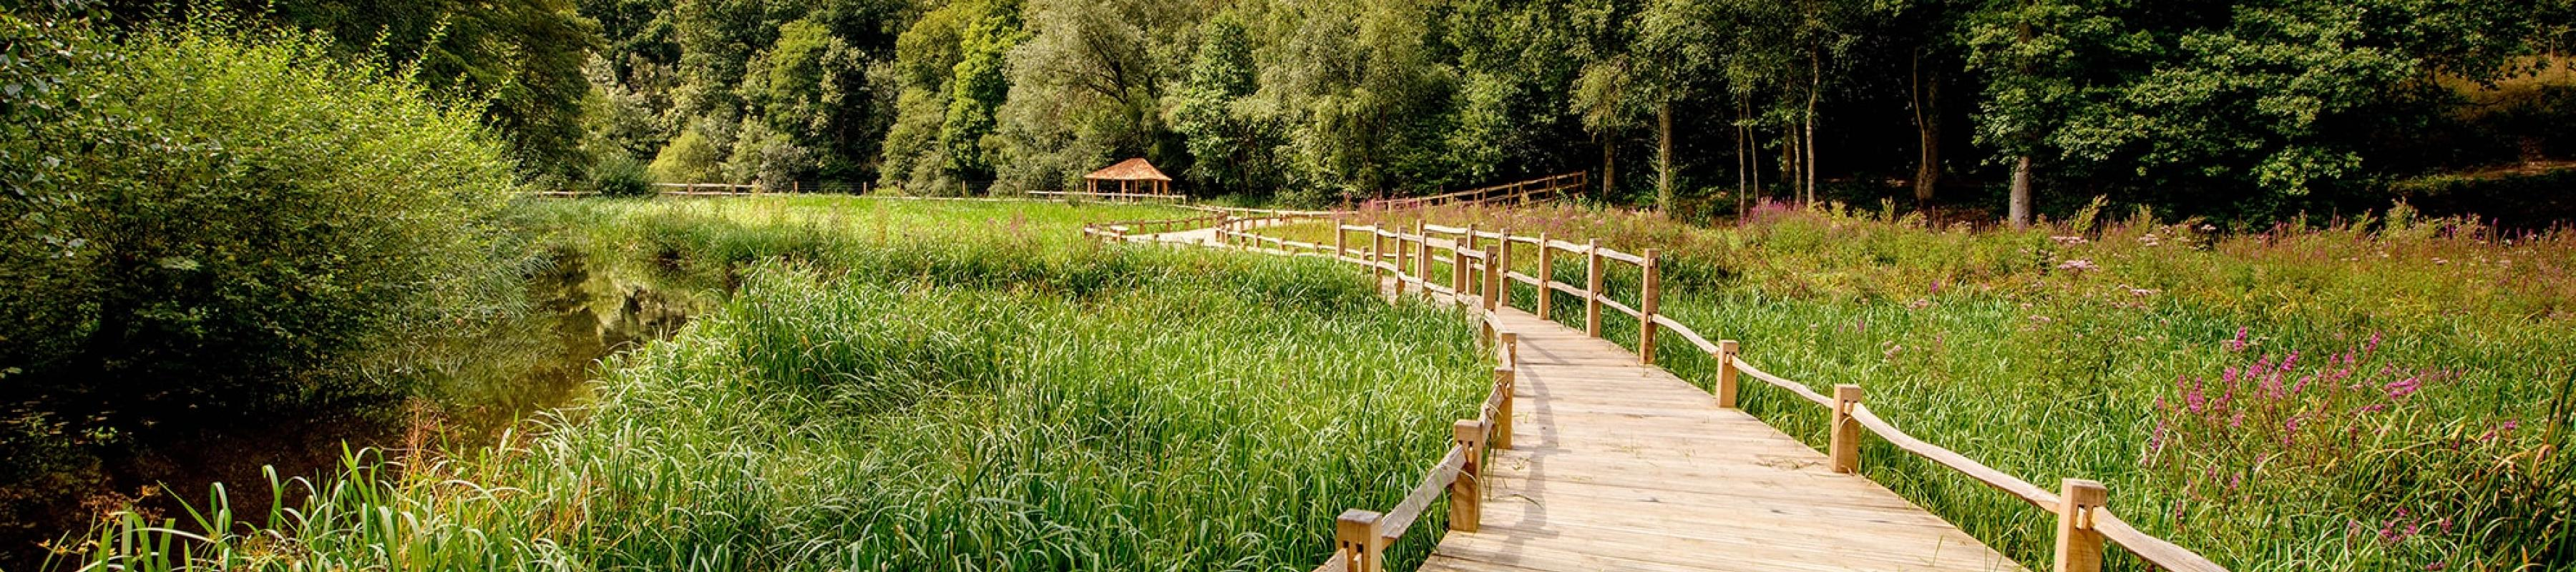 The board walk sweeping across the Wetlands at Wakehurst